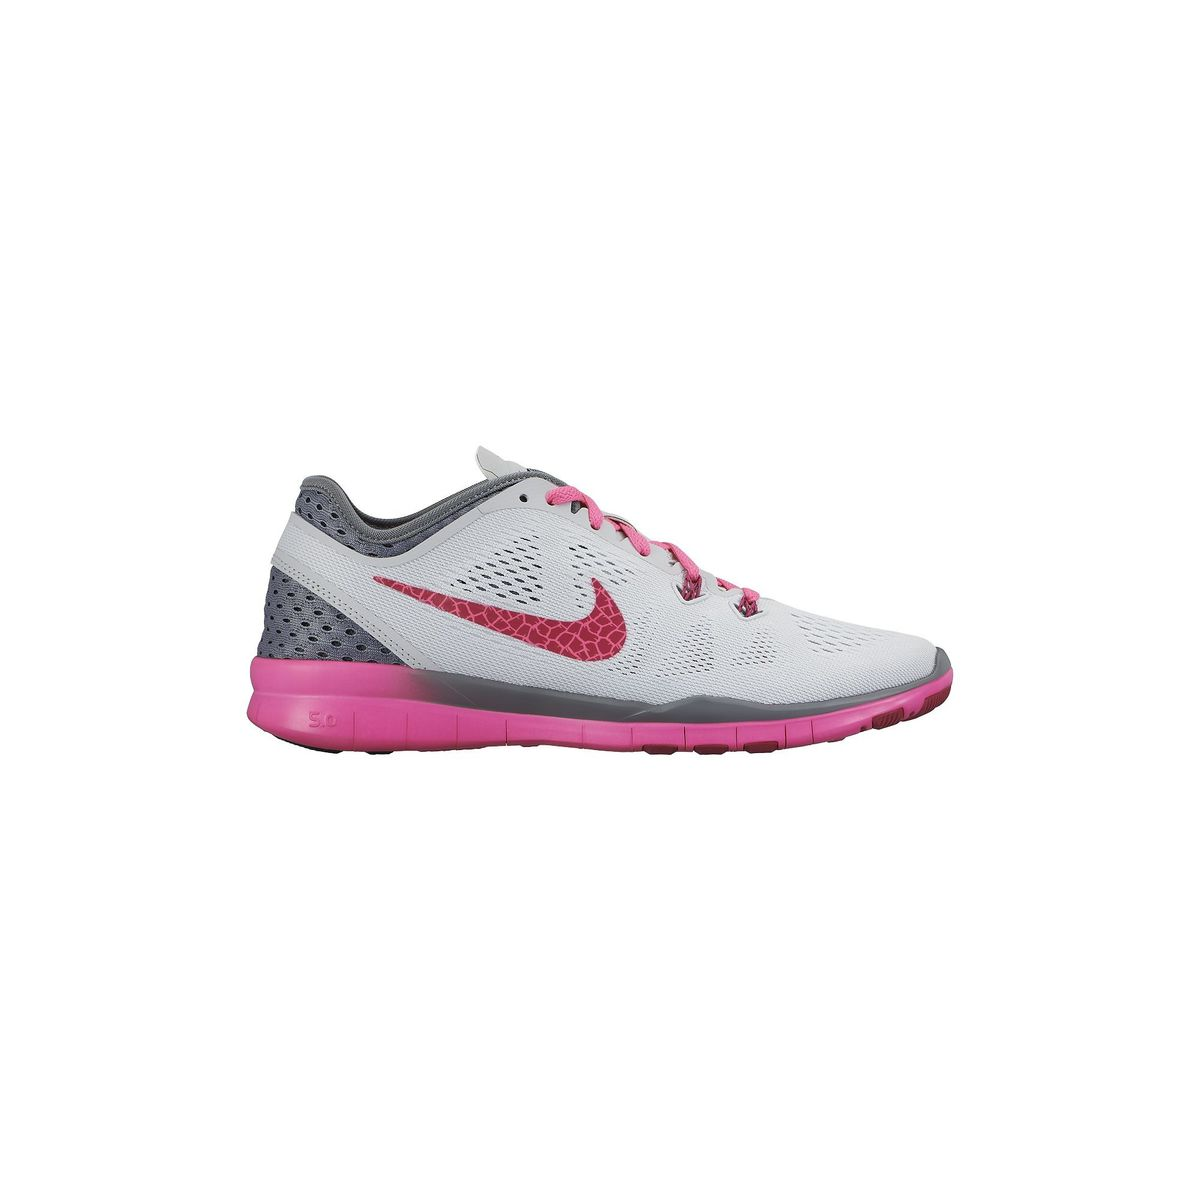 Nike Free Tr Scarpe Buy Fit Cross Women's Training 5 Breathe 0 xv6XnTqq